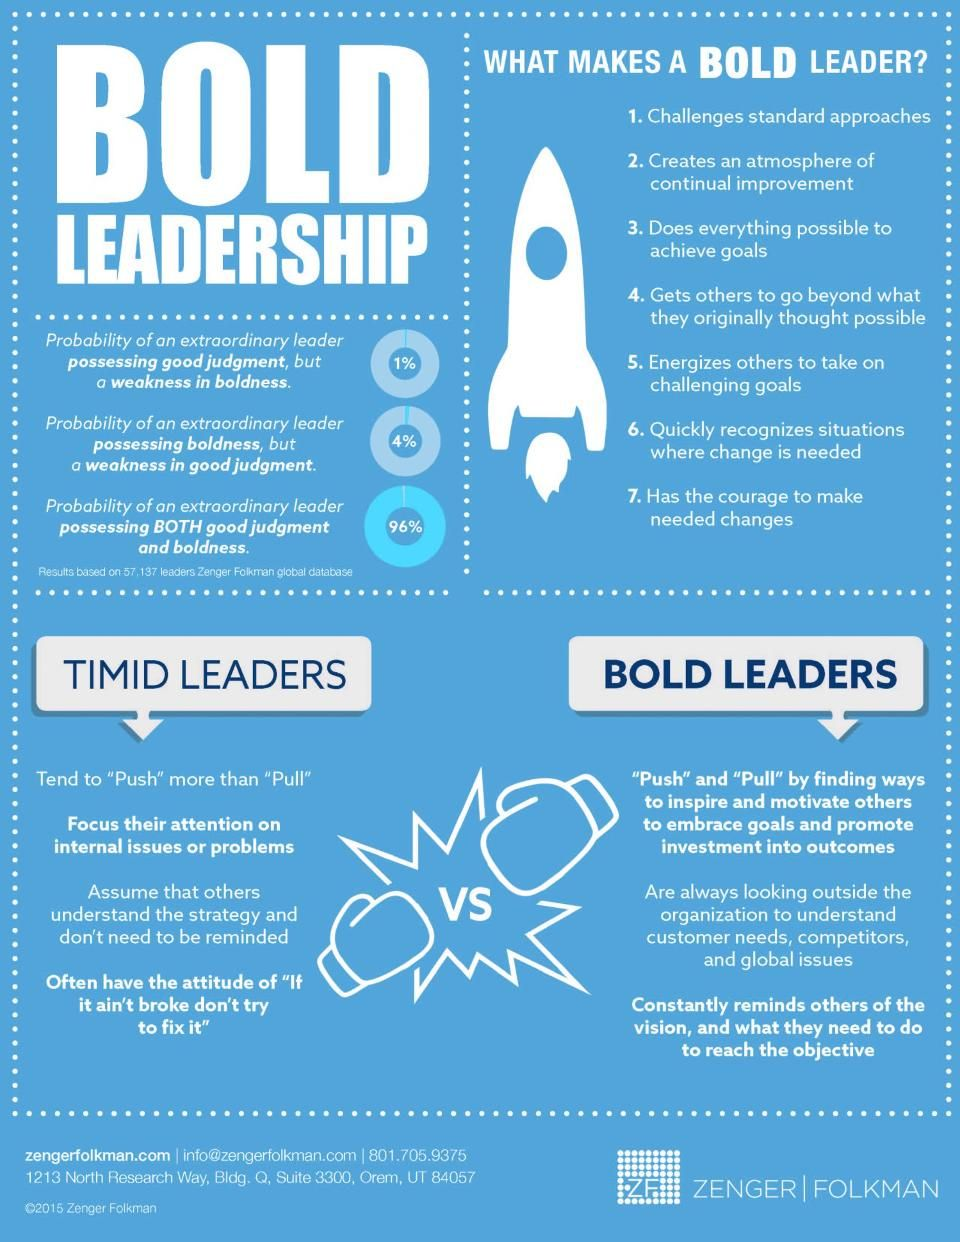 Bold Leadership Infographic.